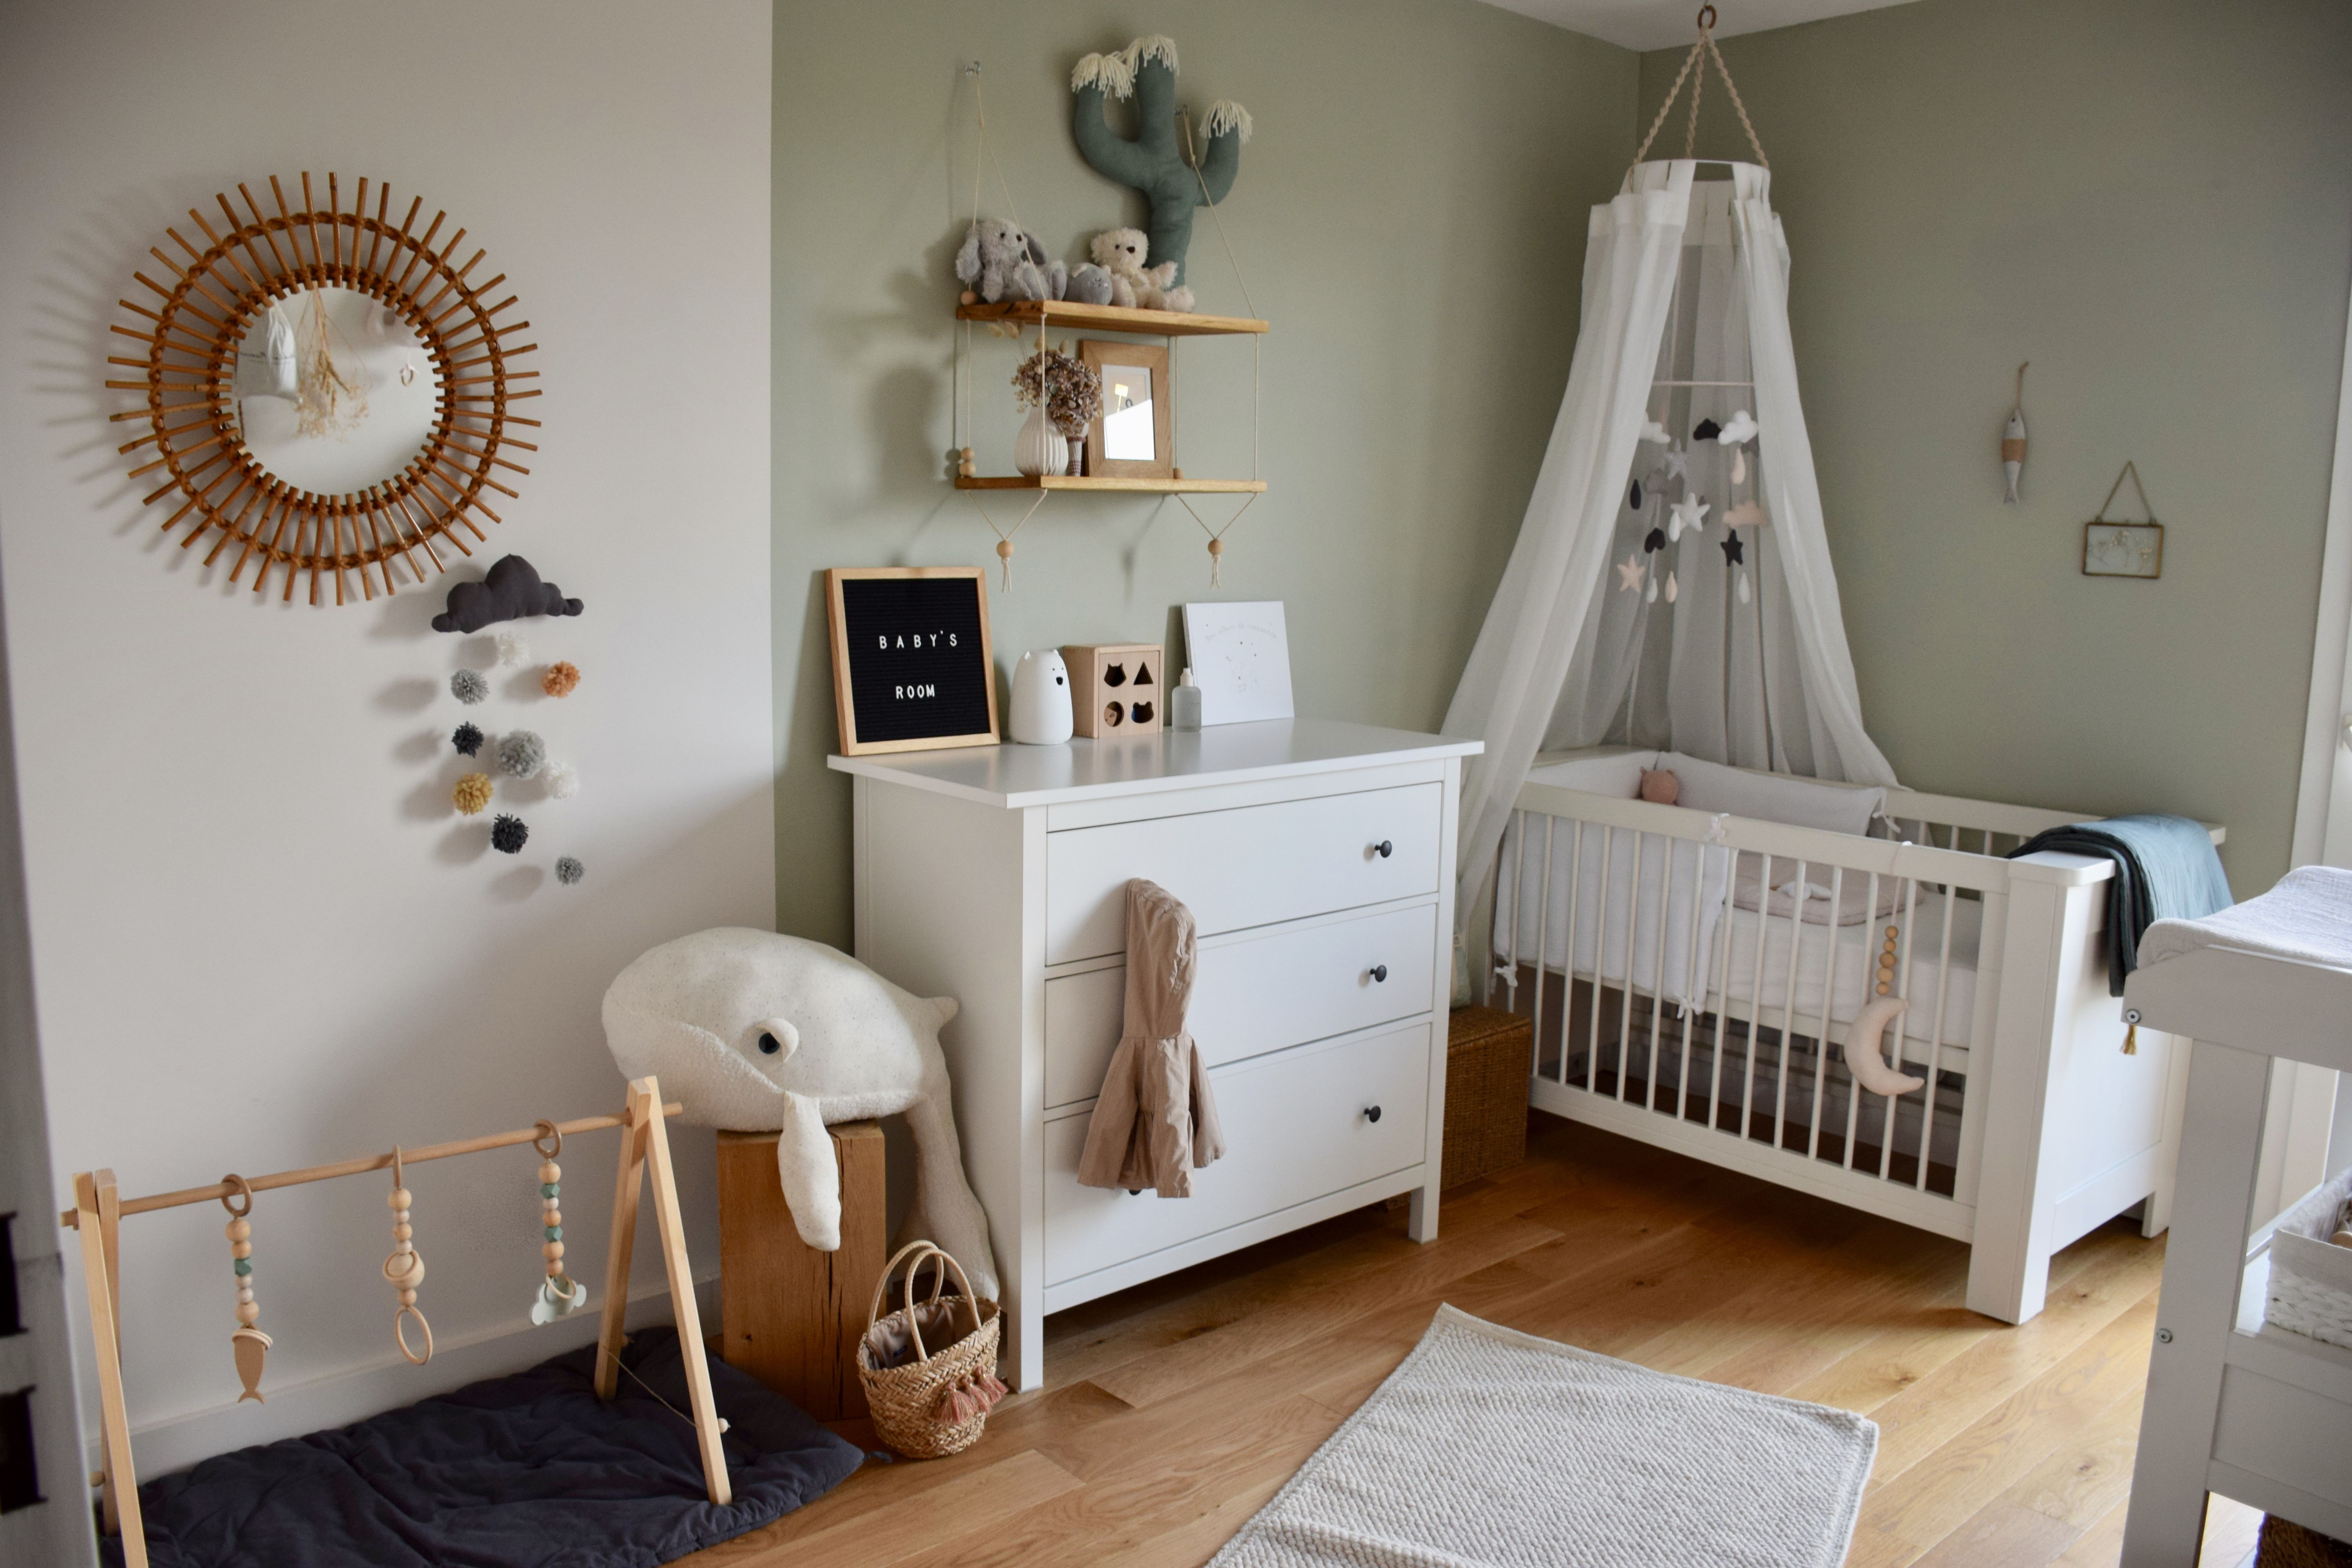 Pin By Megan Wu On Home Decor In 2020 Baby Room Baby Nursery